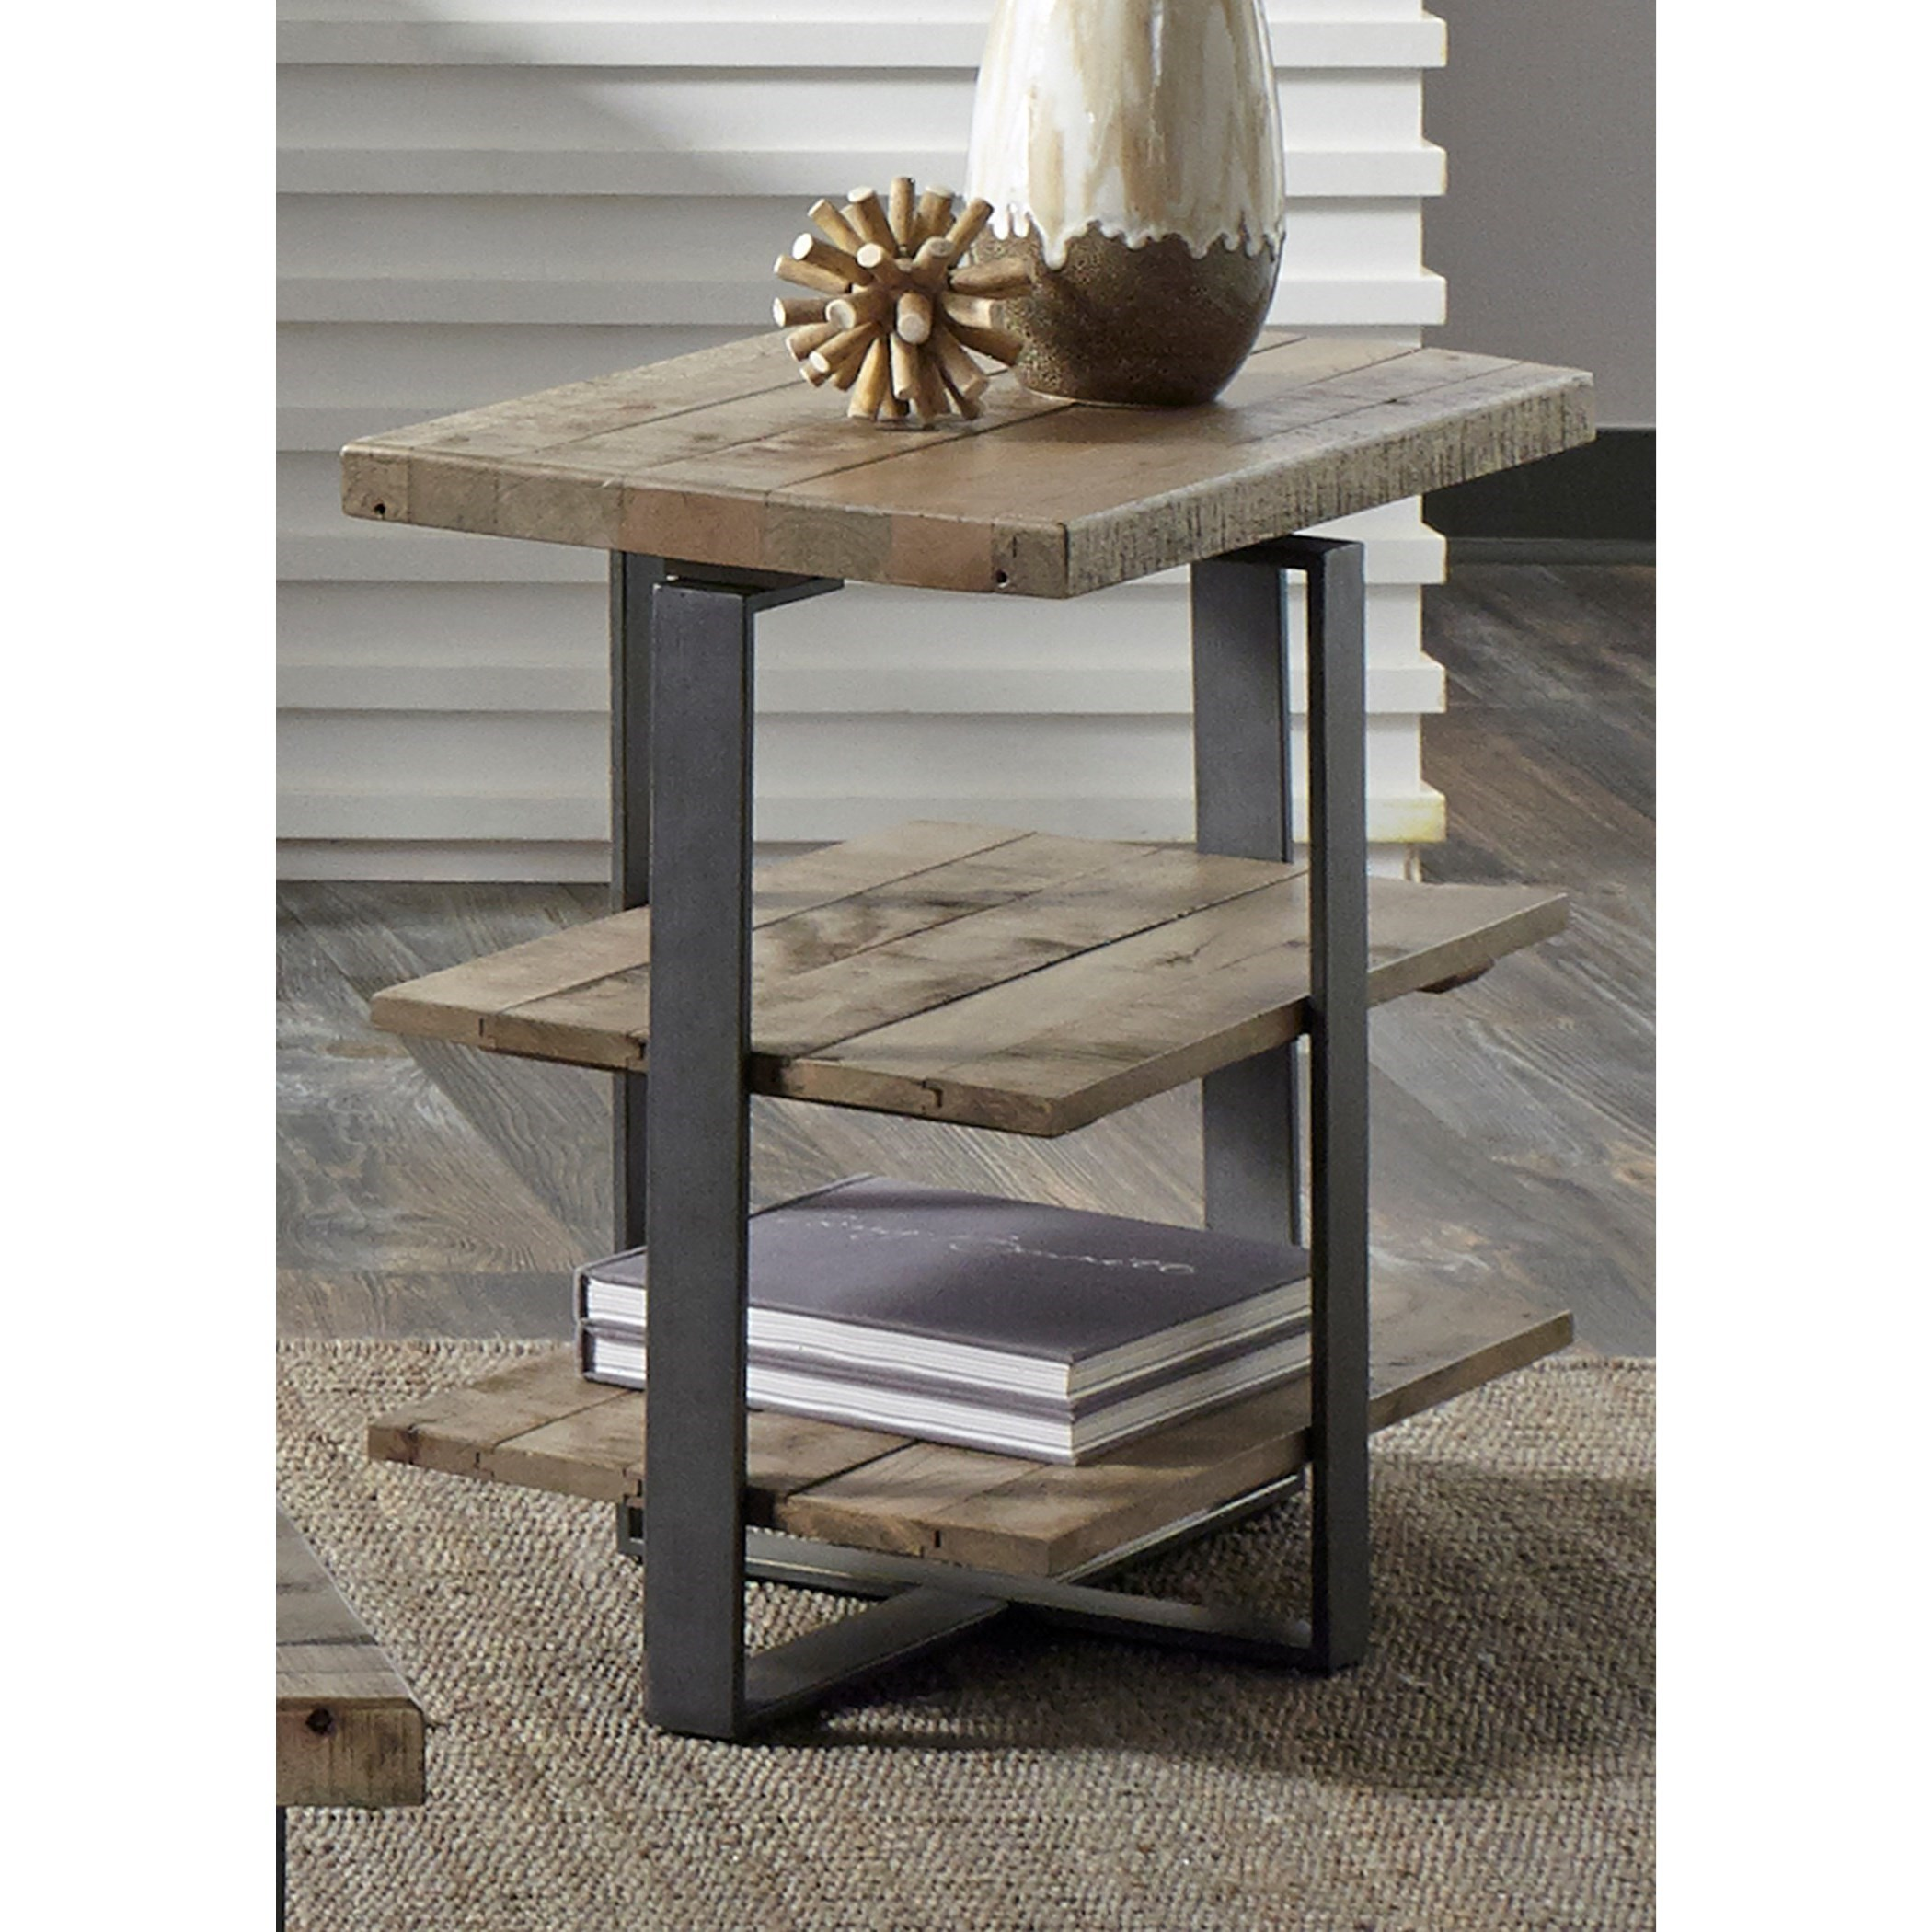 Liberty Furniture Baja Occasional Chair Side Table - Item Number: 214-OT1021